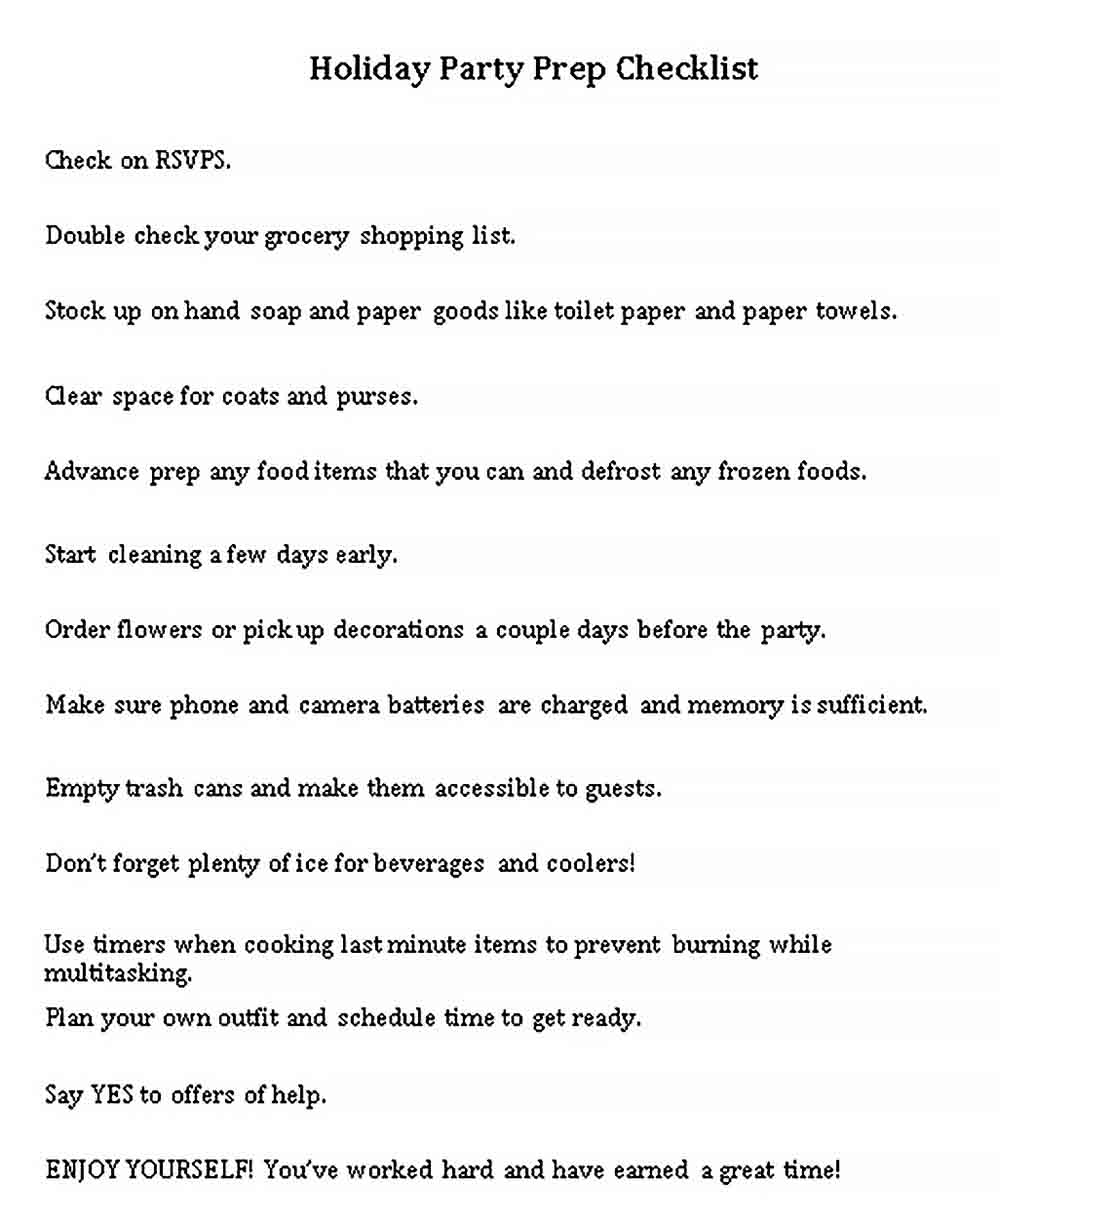 Holiday Checklist Template